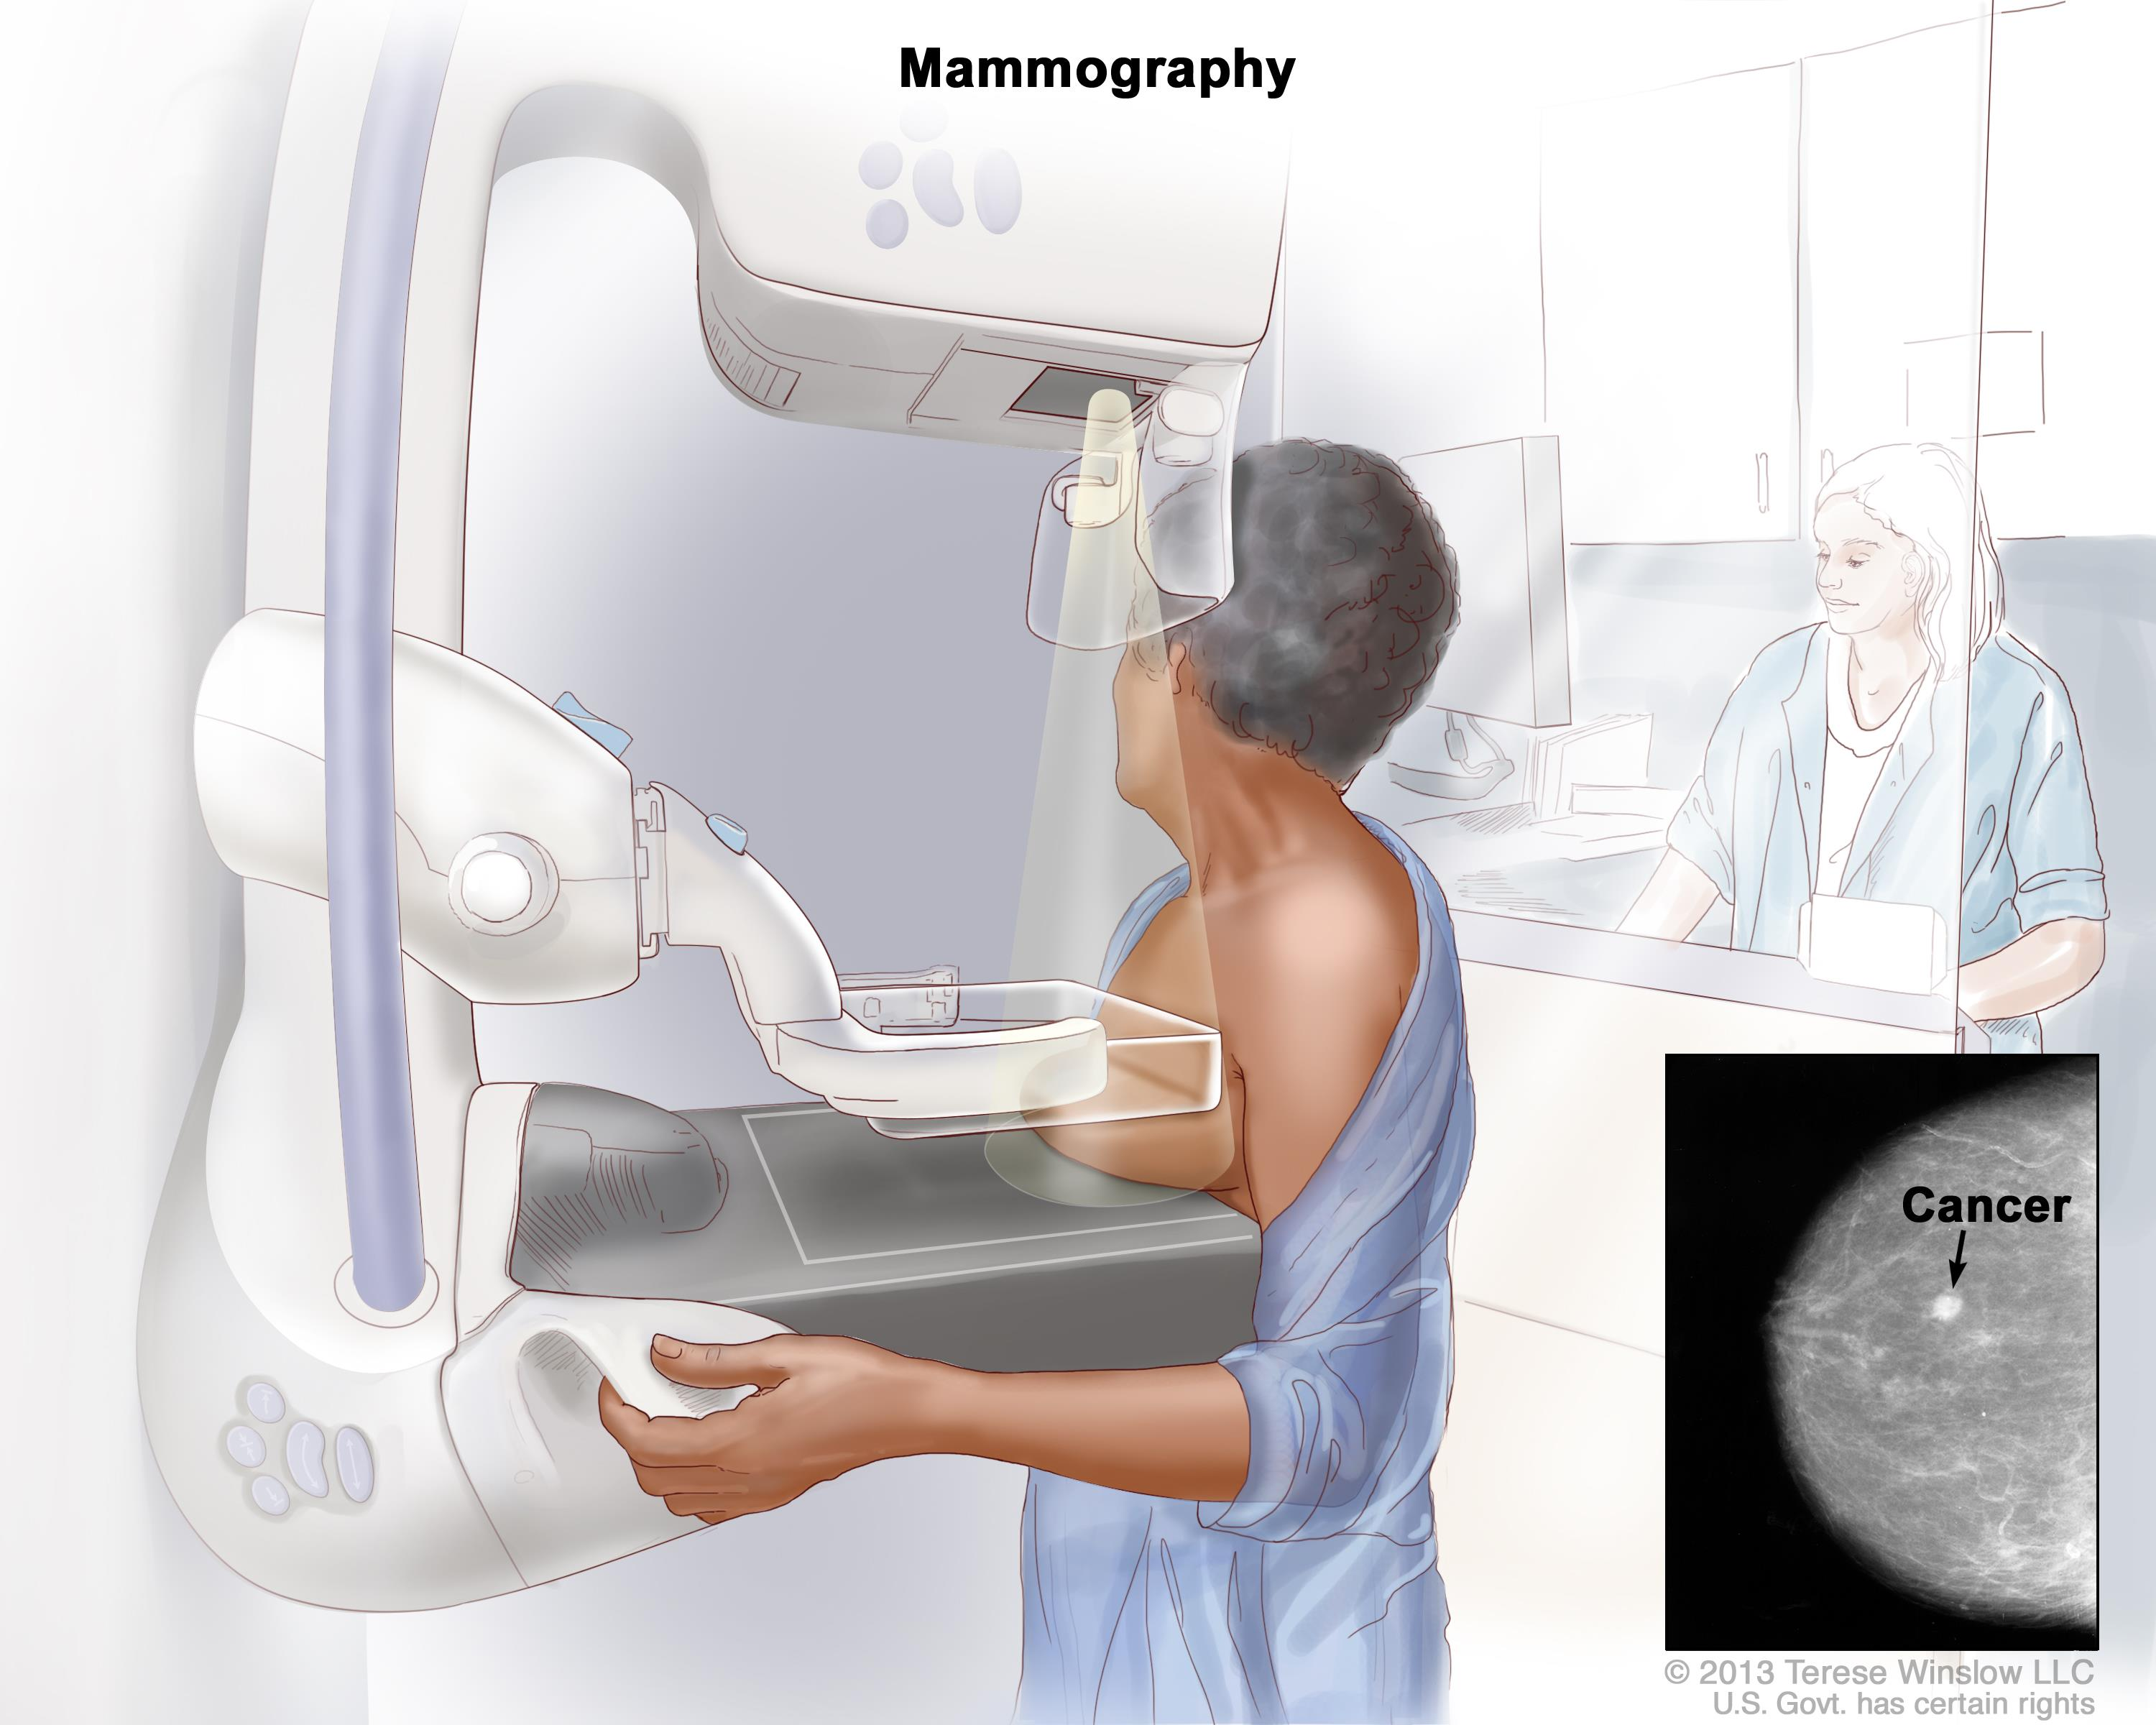 Mammography; the left breast is pressed between two plates.  An X-ray machine is used to take pictures of the breast. An inset shows the x-ray film image with an arrow pointed at abnormal tissue.